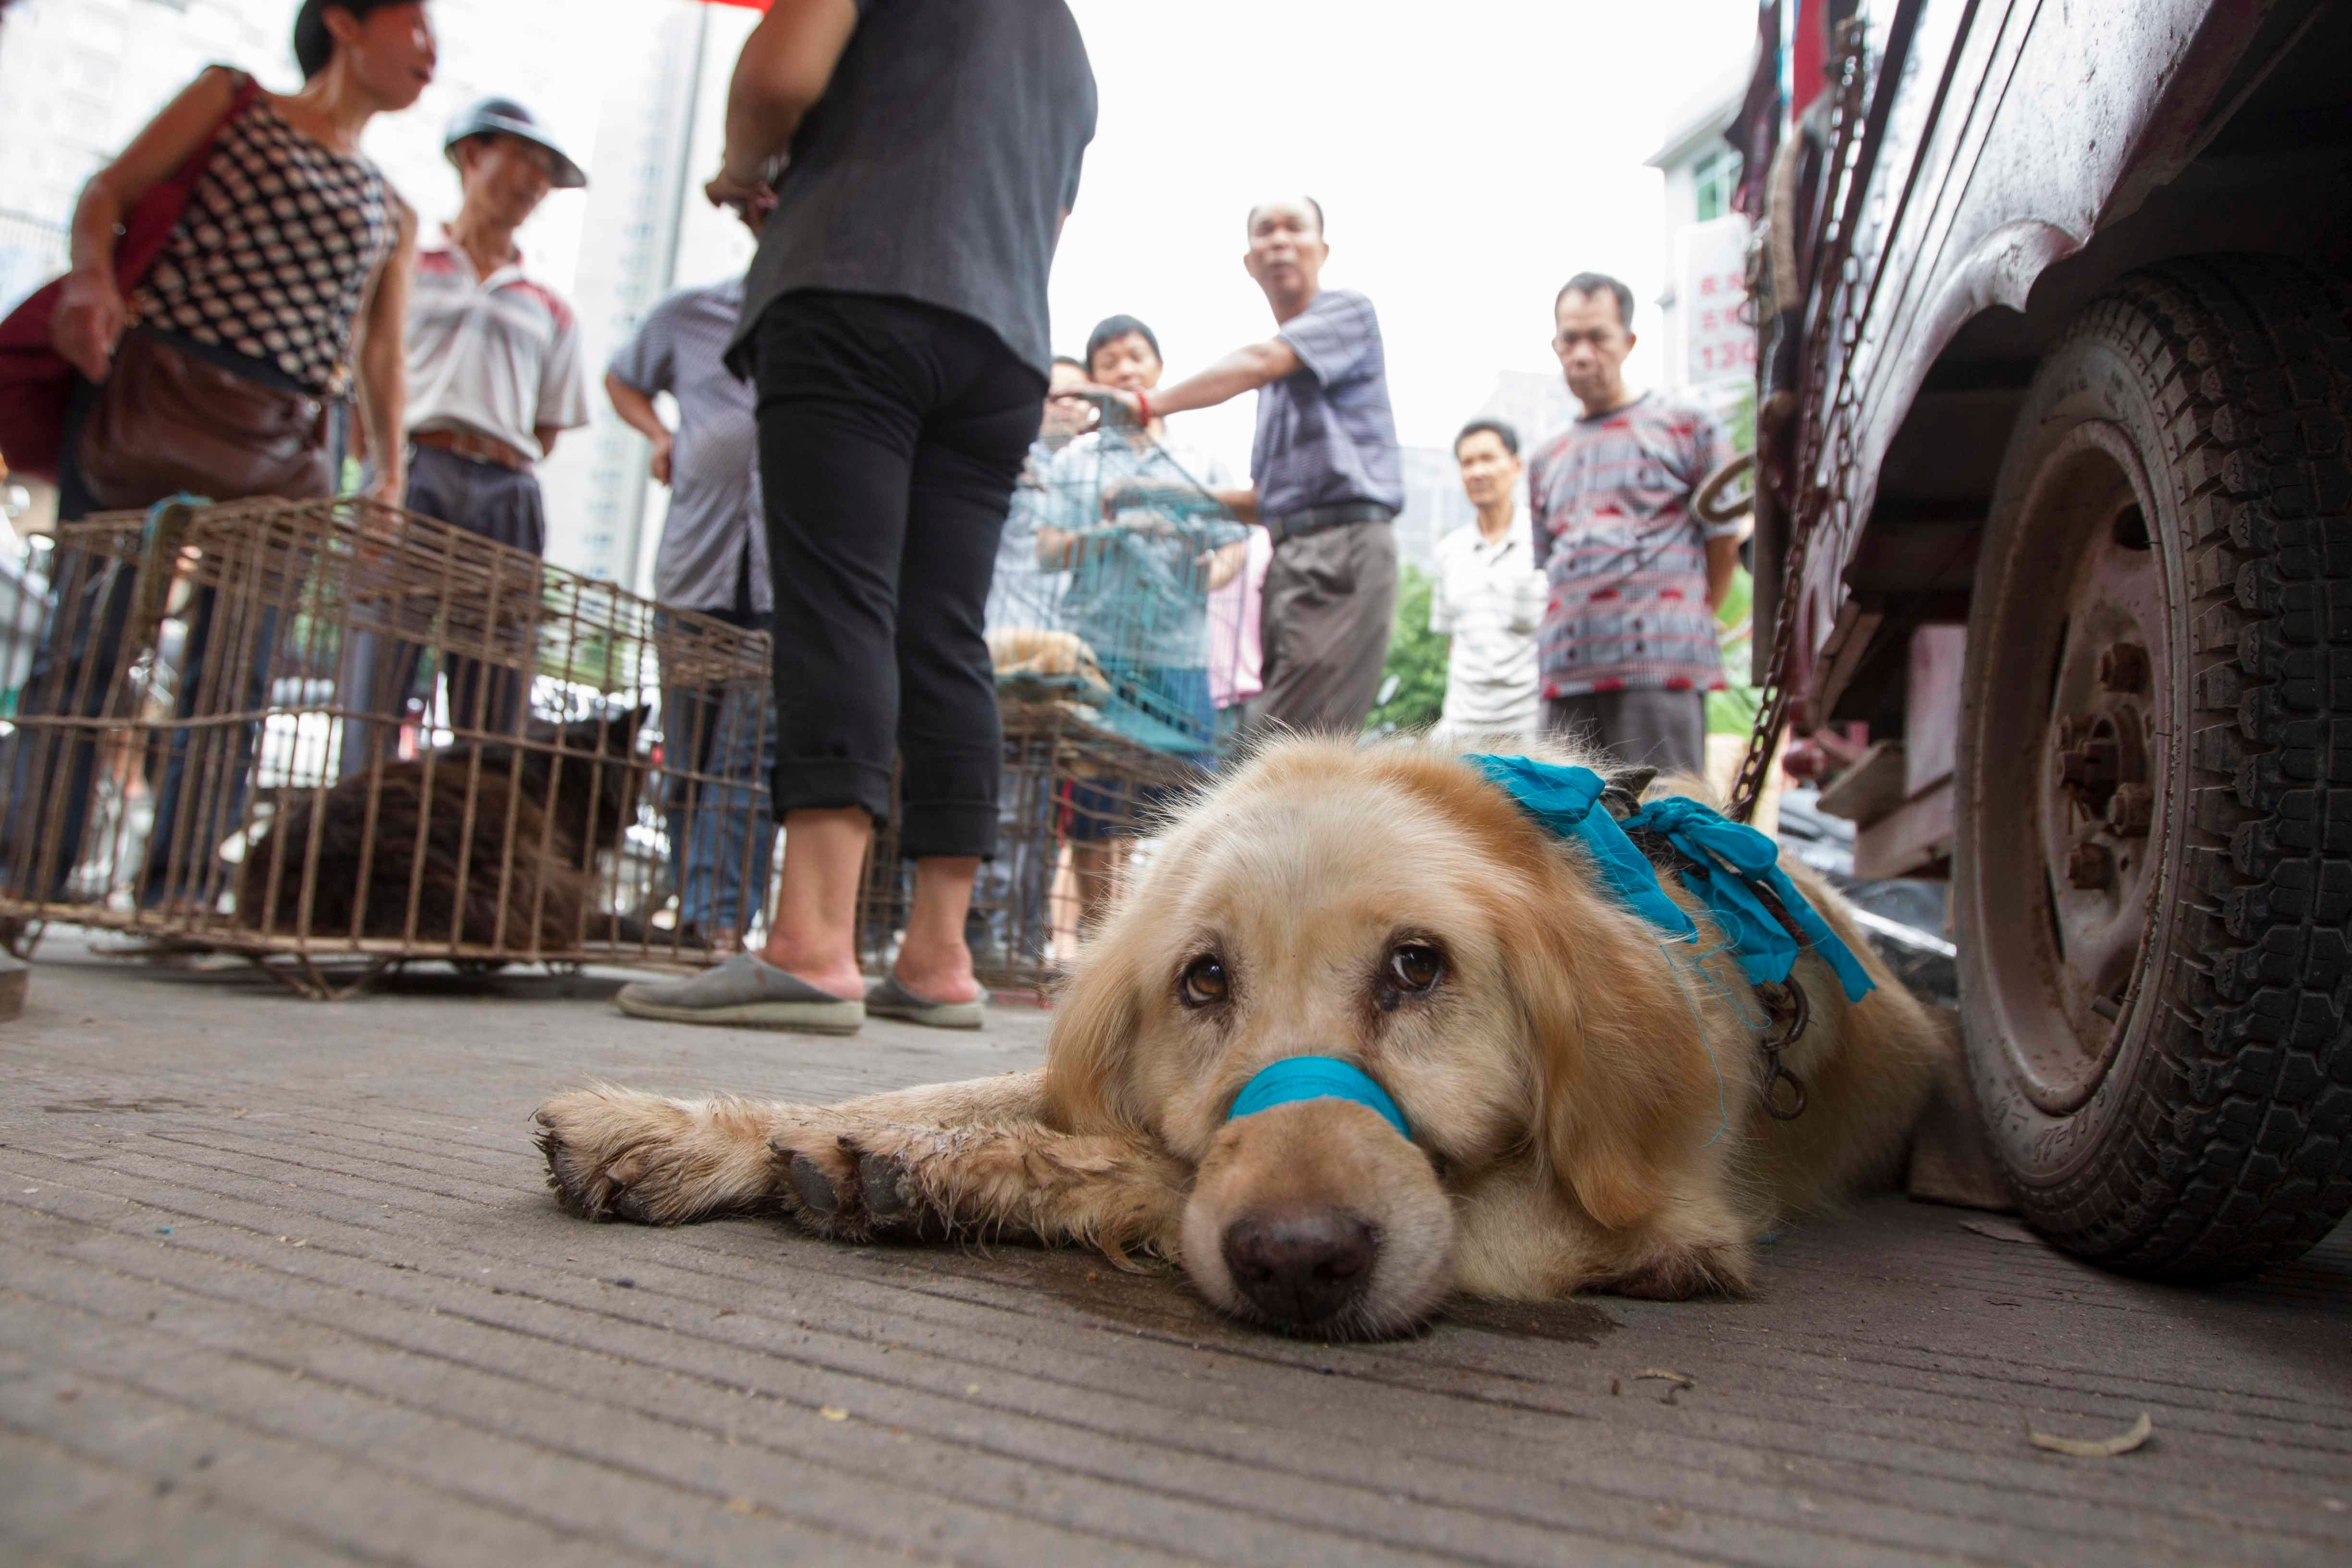 Dogs set to be killed at a market preceding the 2014 Yulin Lychee and Dog Meat Festival.